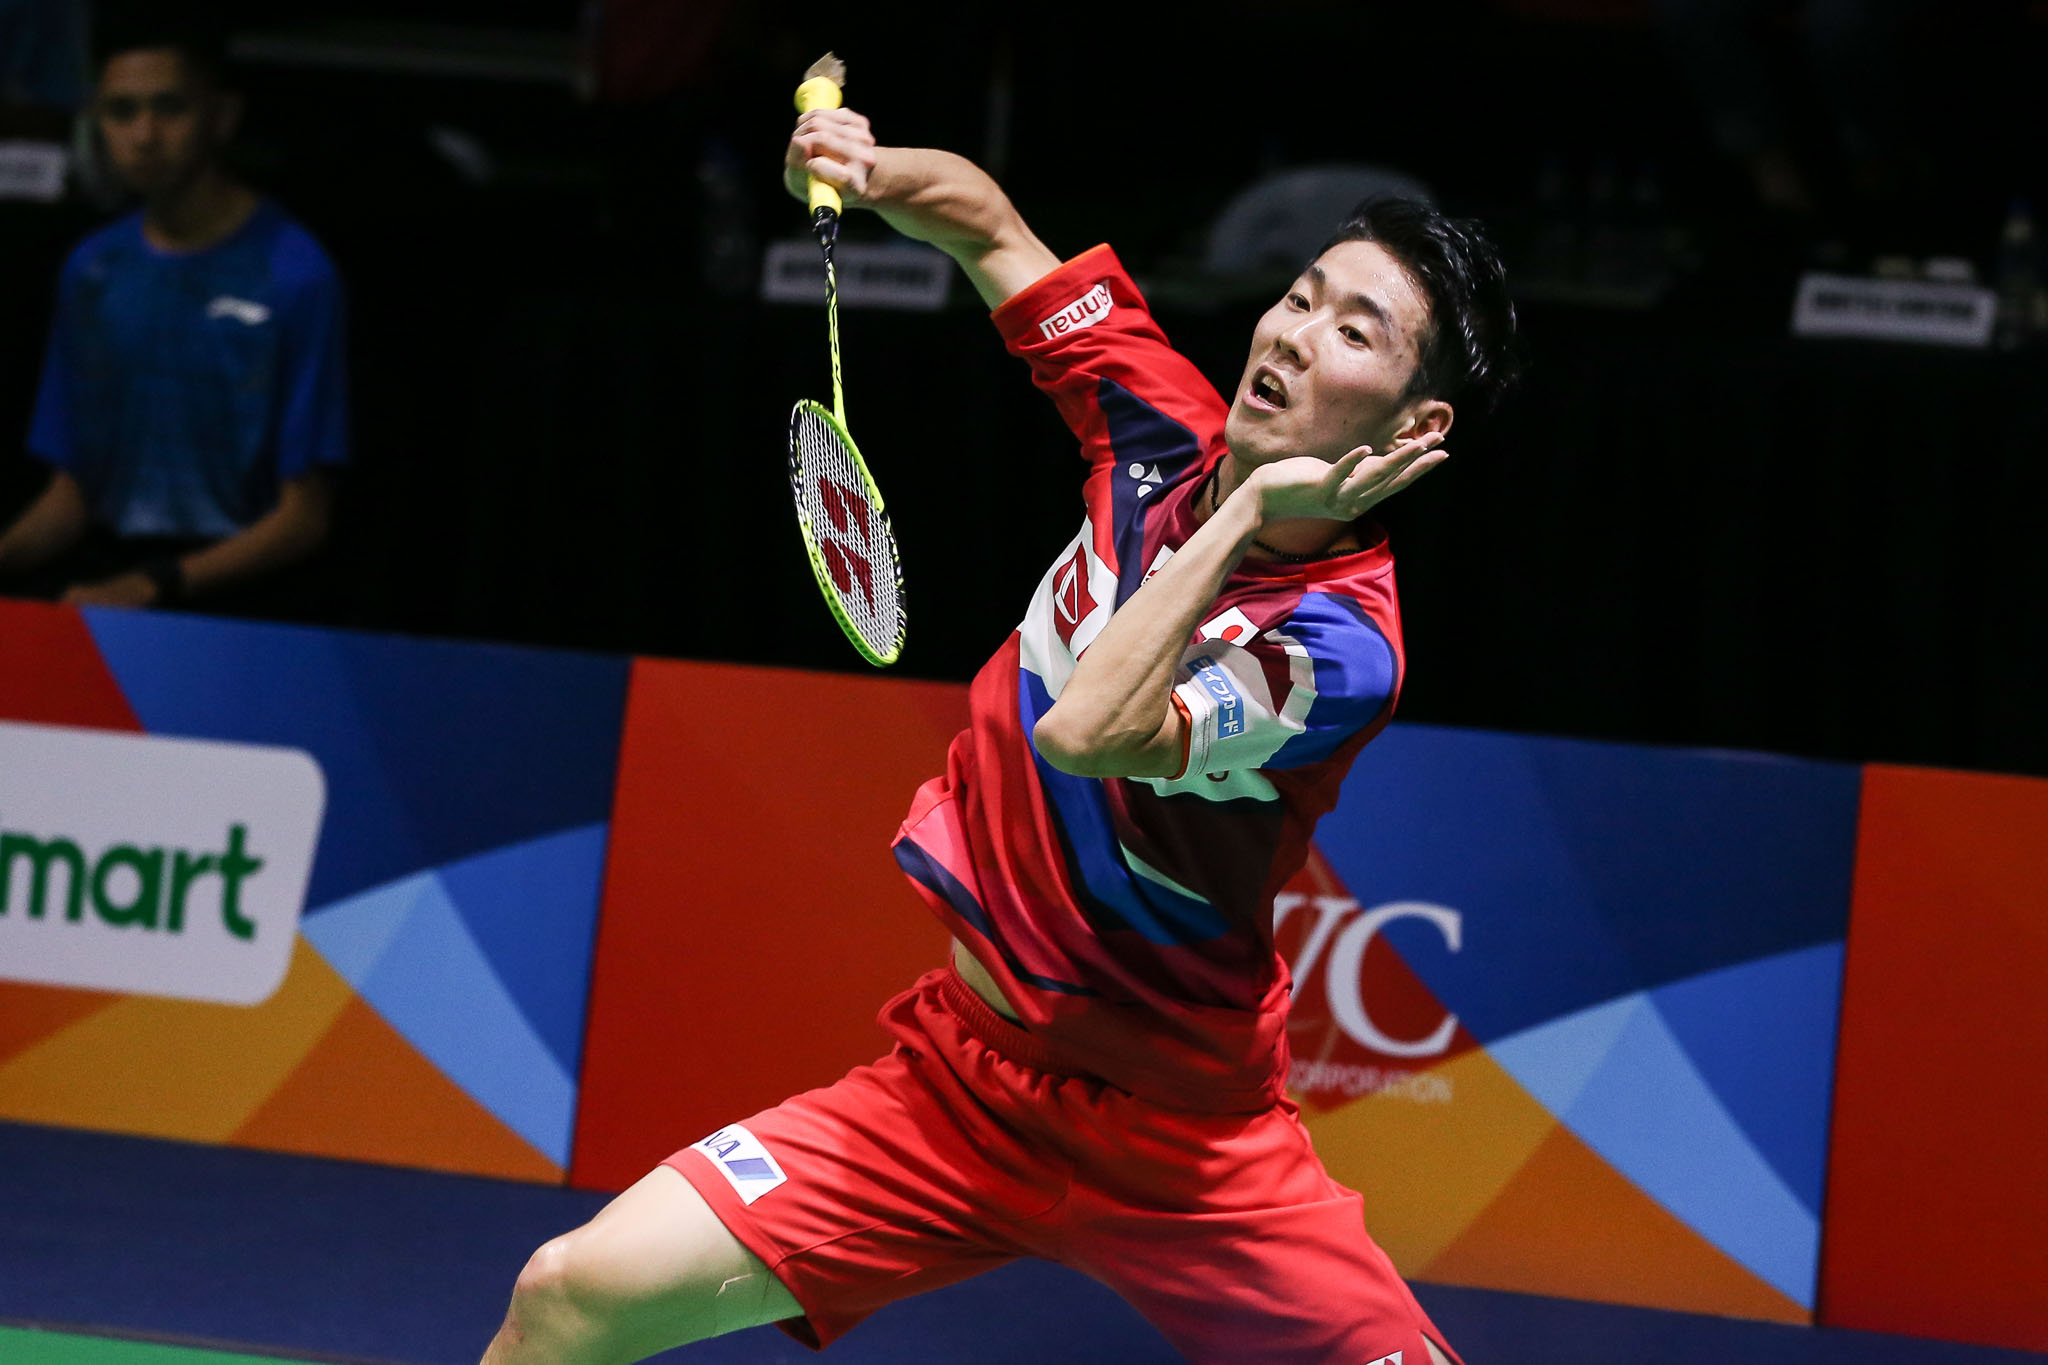 Badminton-Asia-Team-Championships-Mens-QF-Japan-def-Chinese-Taipei-Kanta-Tsuneyama Gallant Philippines falls to Christie, Indonesia in Asian Badminton Team QF 2020 Badminton Asia Team Championships Badminton News  - philippine sports news